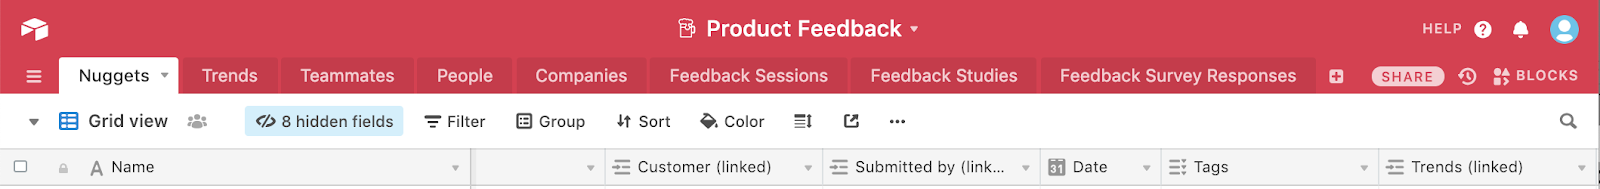 This is an example of an Airtable base (called product feedback) with multiple sheet tabs. This is an example ofa product design team data collection tool.